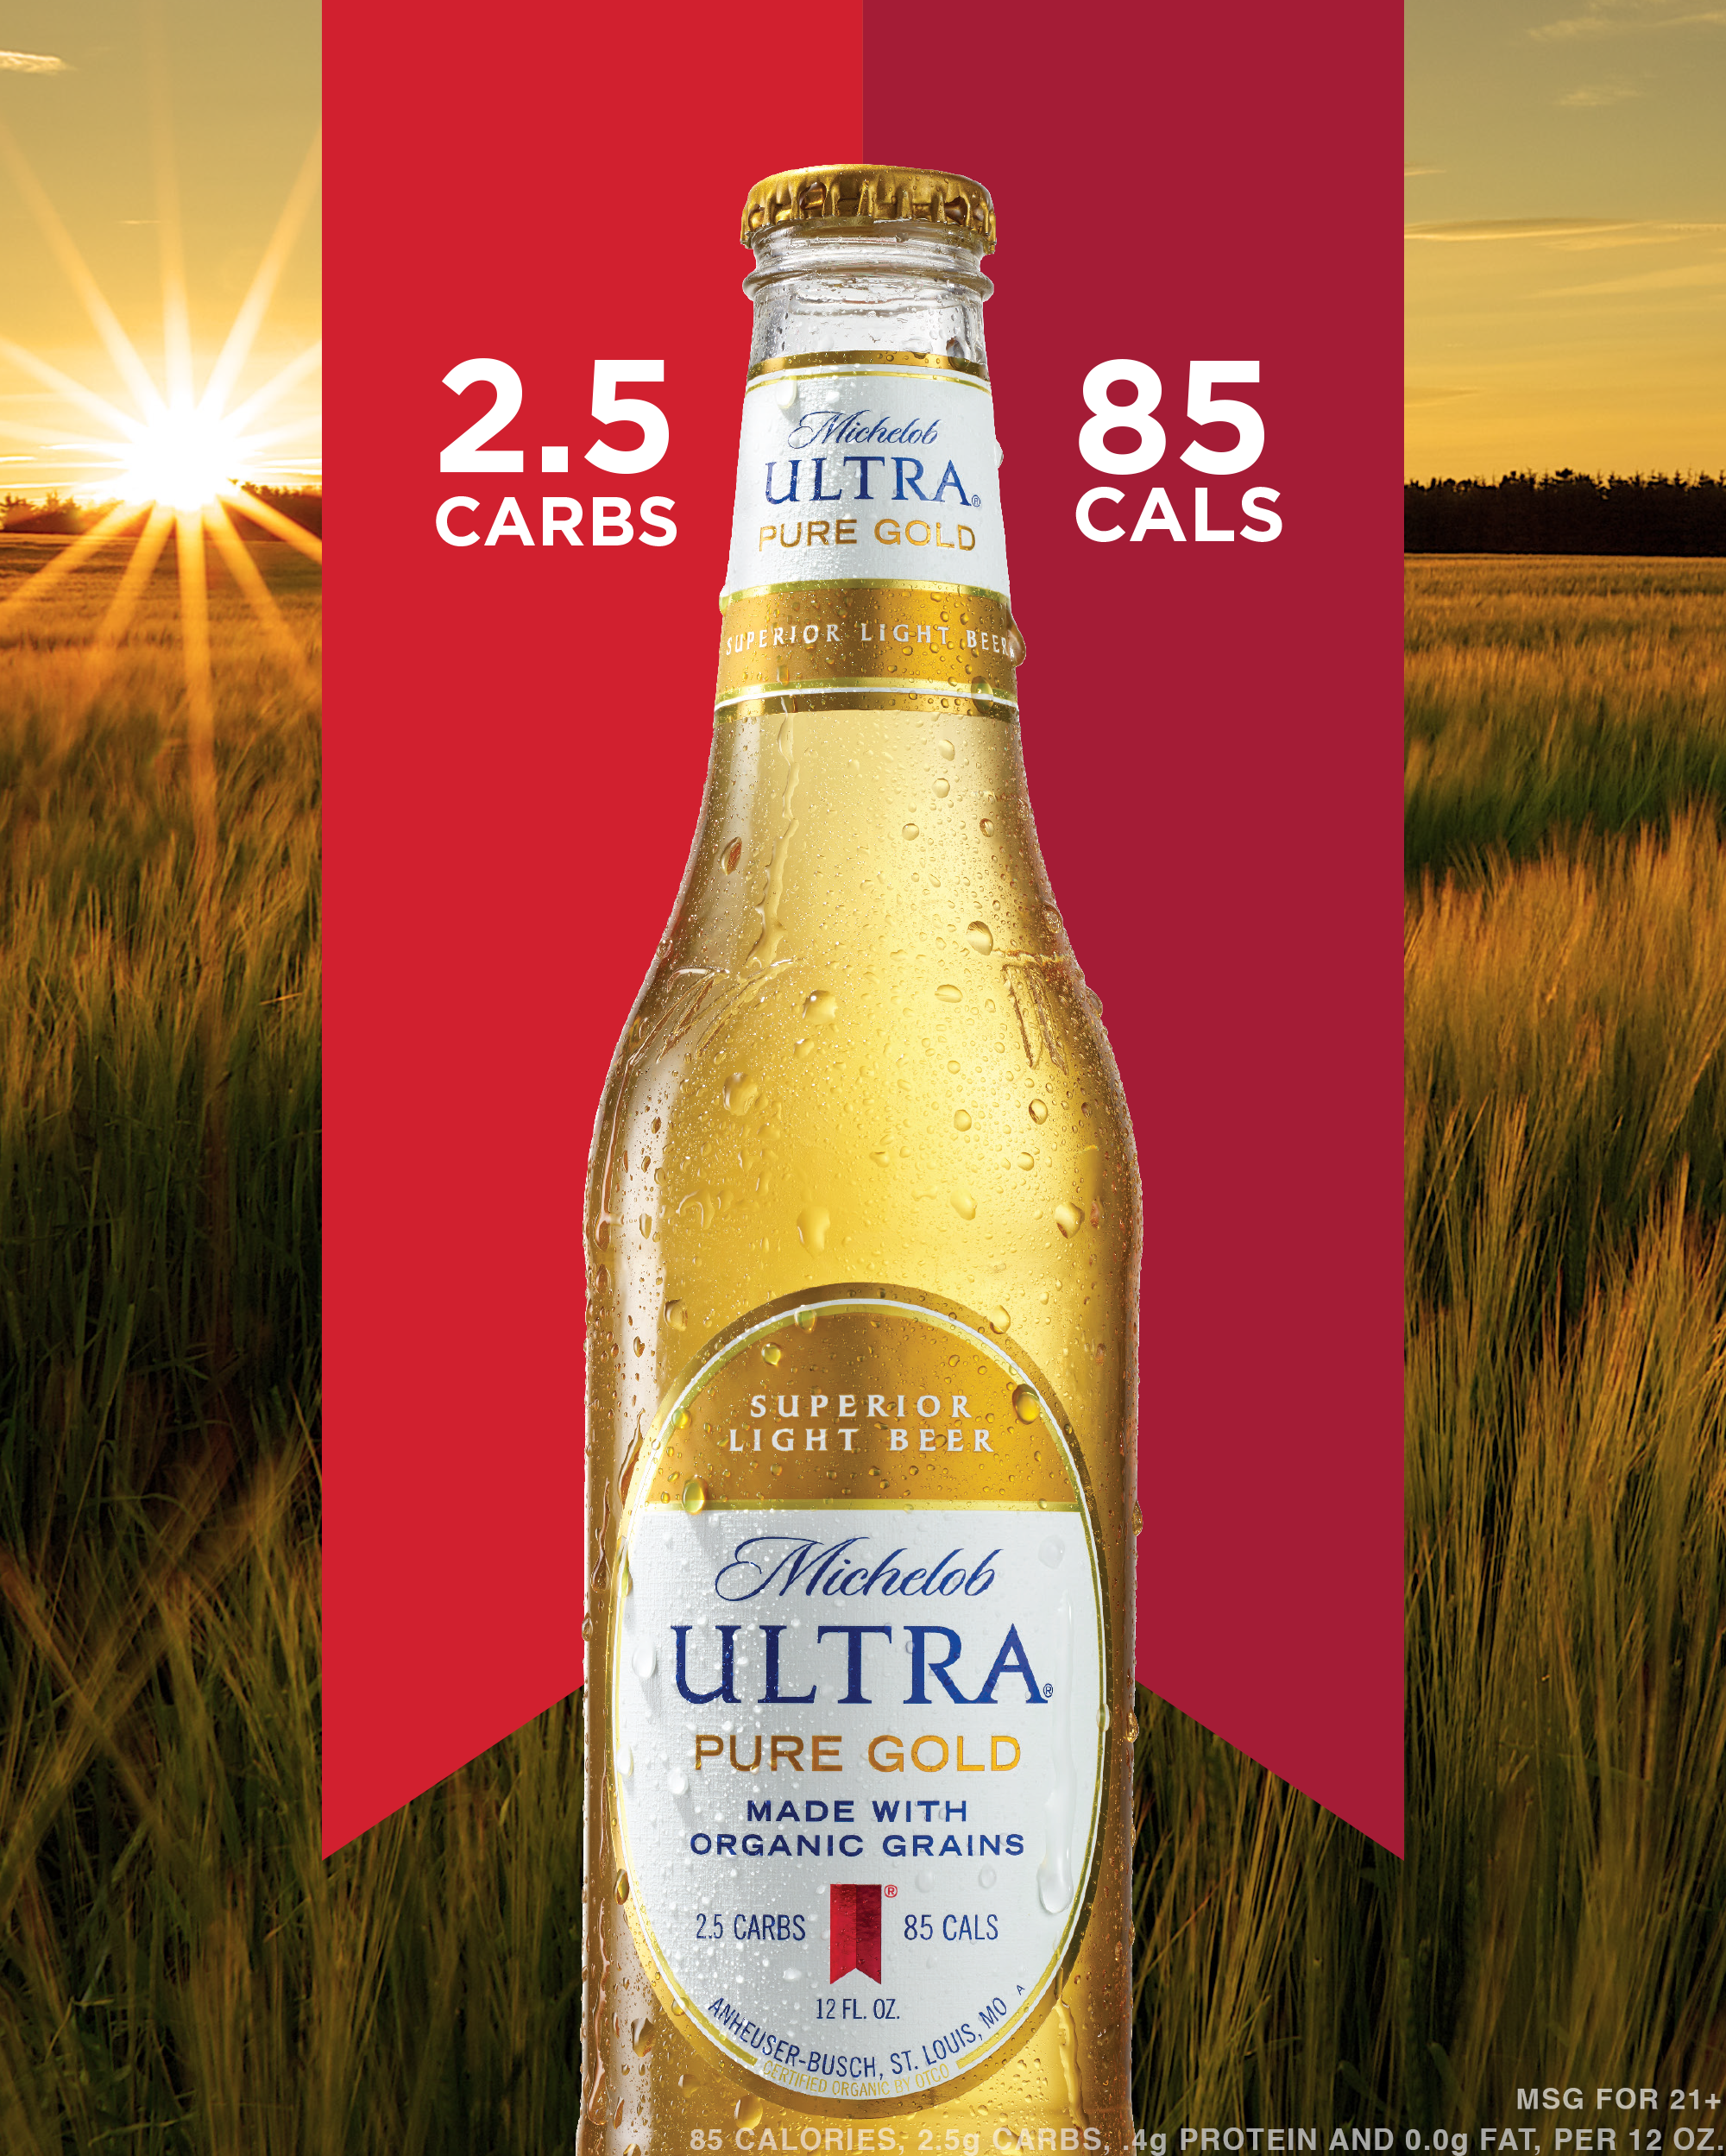 Introducing Michelob ULTRA Pure Gold, The Premium Light Beer Made With  Organic Grains. Available Now. #PureGold #beer #organic U201c85 CALORIES, 2.5g  CARBS, ...